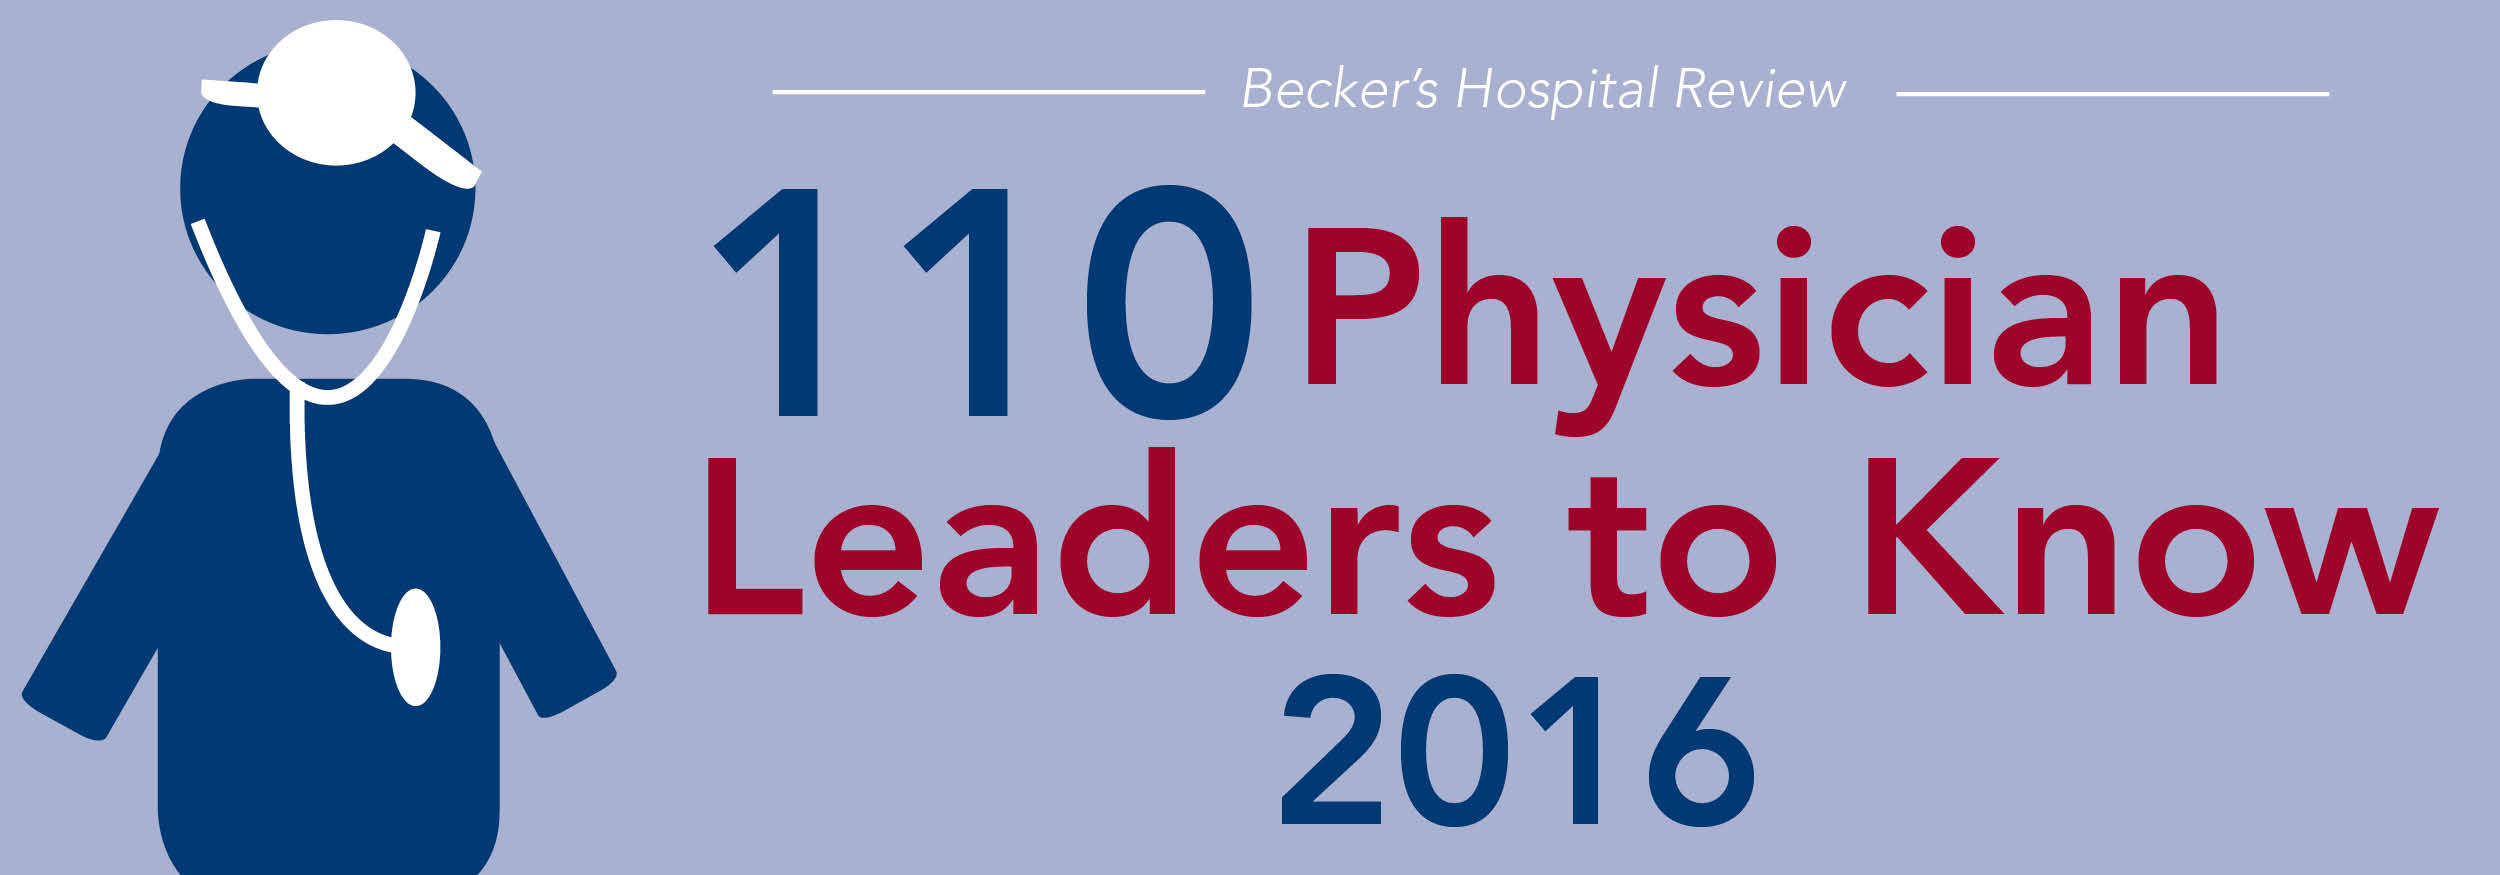 110 physician leaders to know | 2016